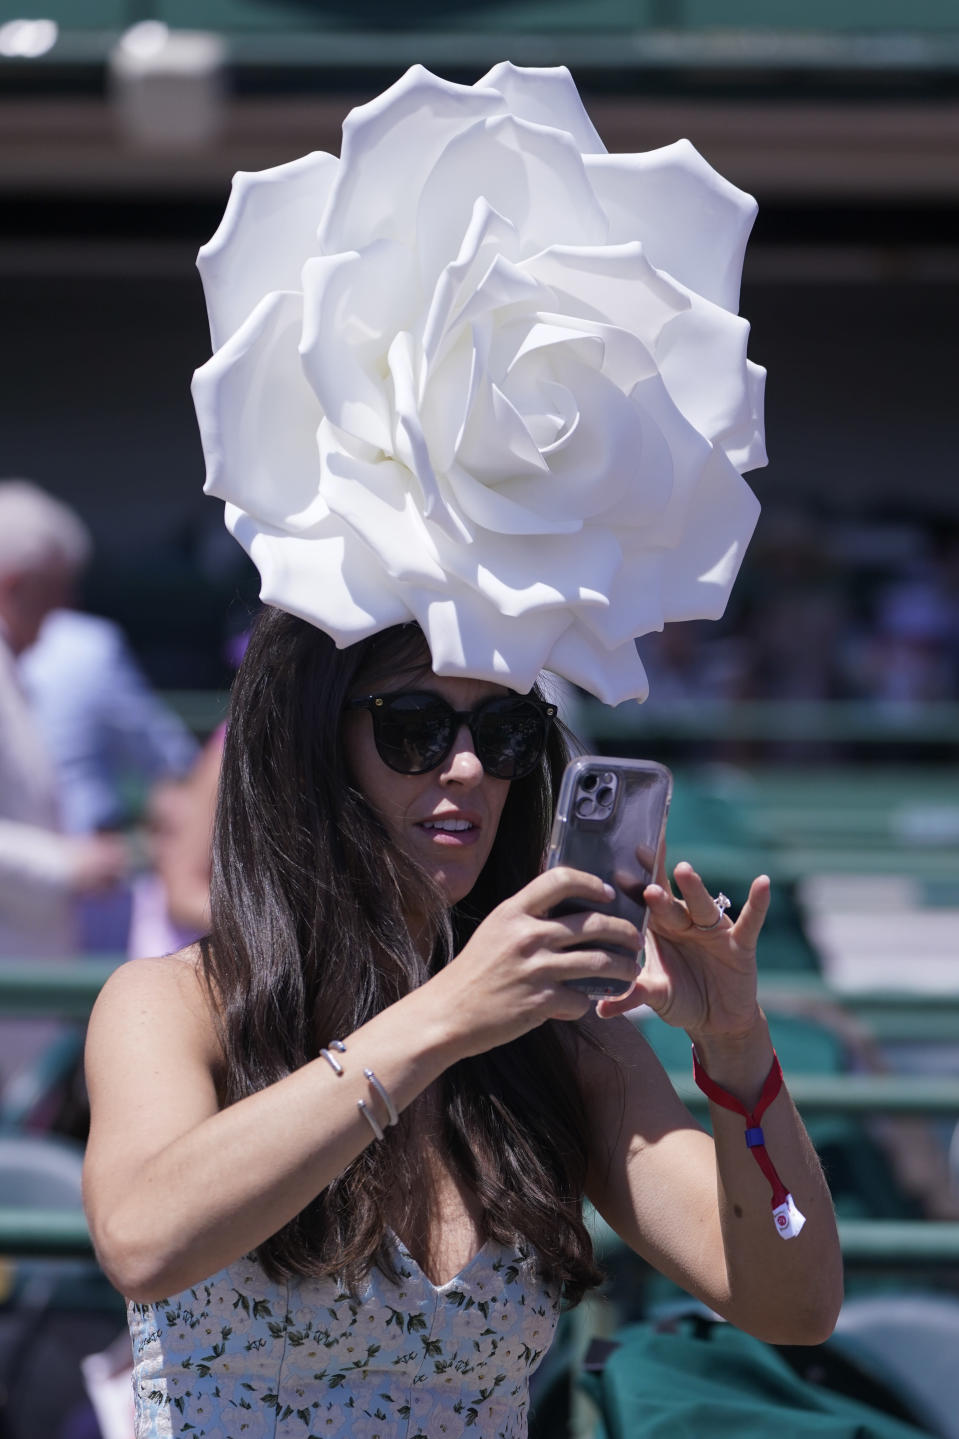 A woman takes a photo before the 147th running of the Kentucky Derby at Churchill Downs, Saturday, May 1, 2021, in Louisville, Ky. (AP Photo/Michael Conroy)